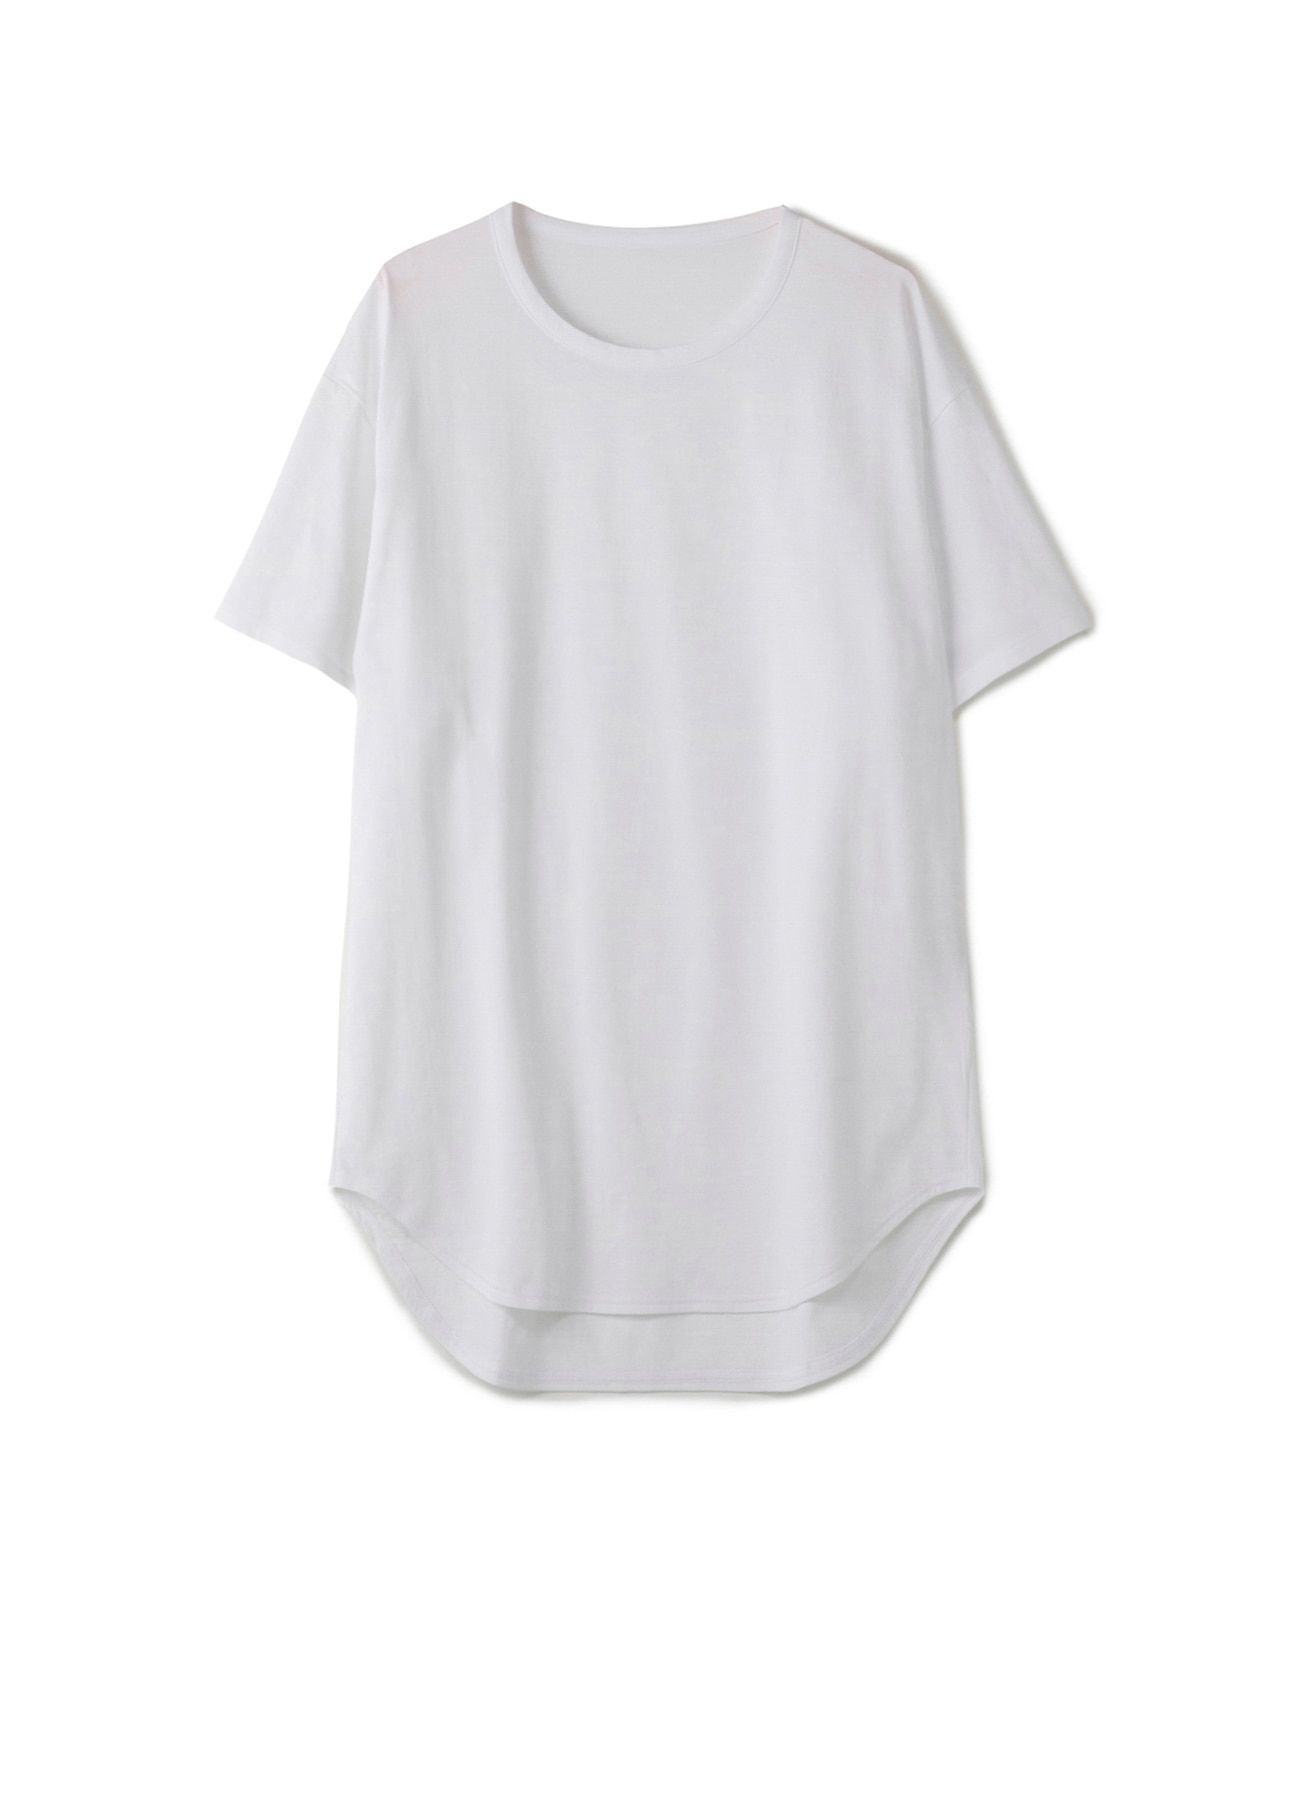 30 / cotton Jersey Round Short Sleeves Cut Sew